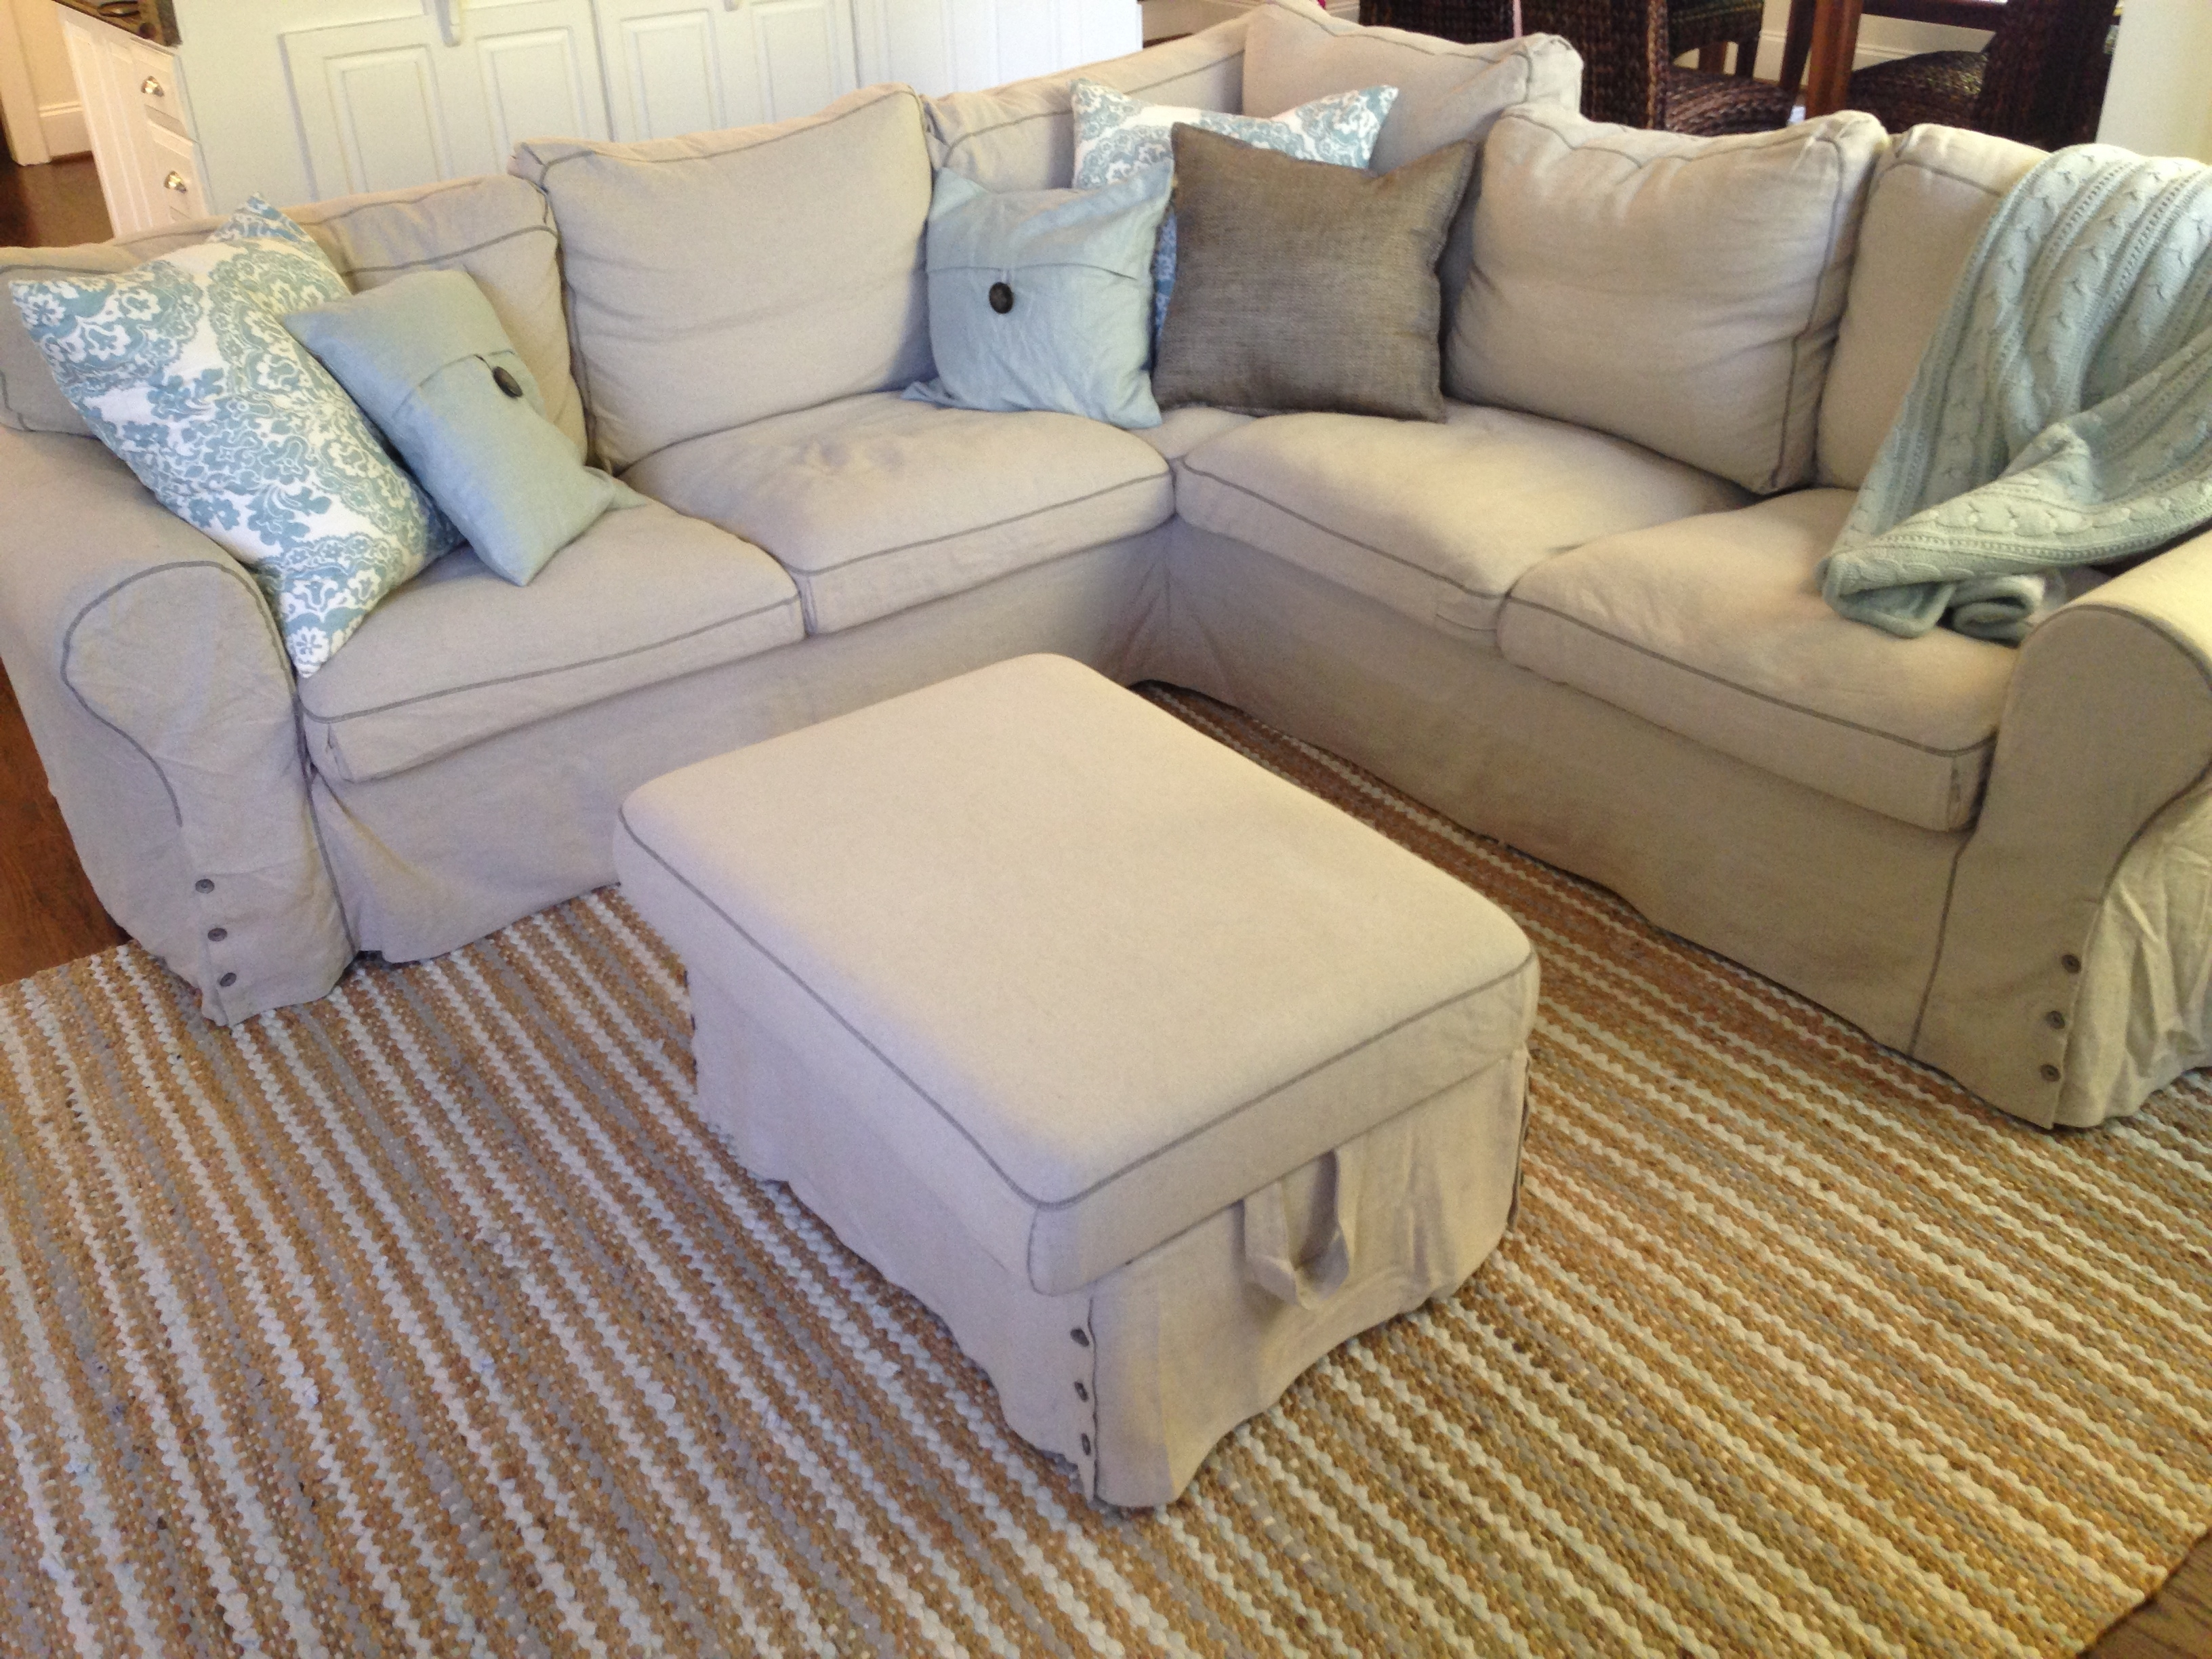 Ikea Ektorp Sectional In Risane Natural The Cover Is Removable Within 2018 Washable Sofas (View 11 of 15)